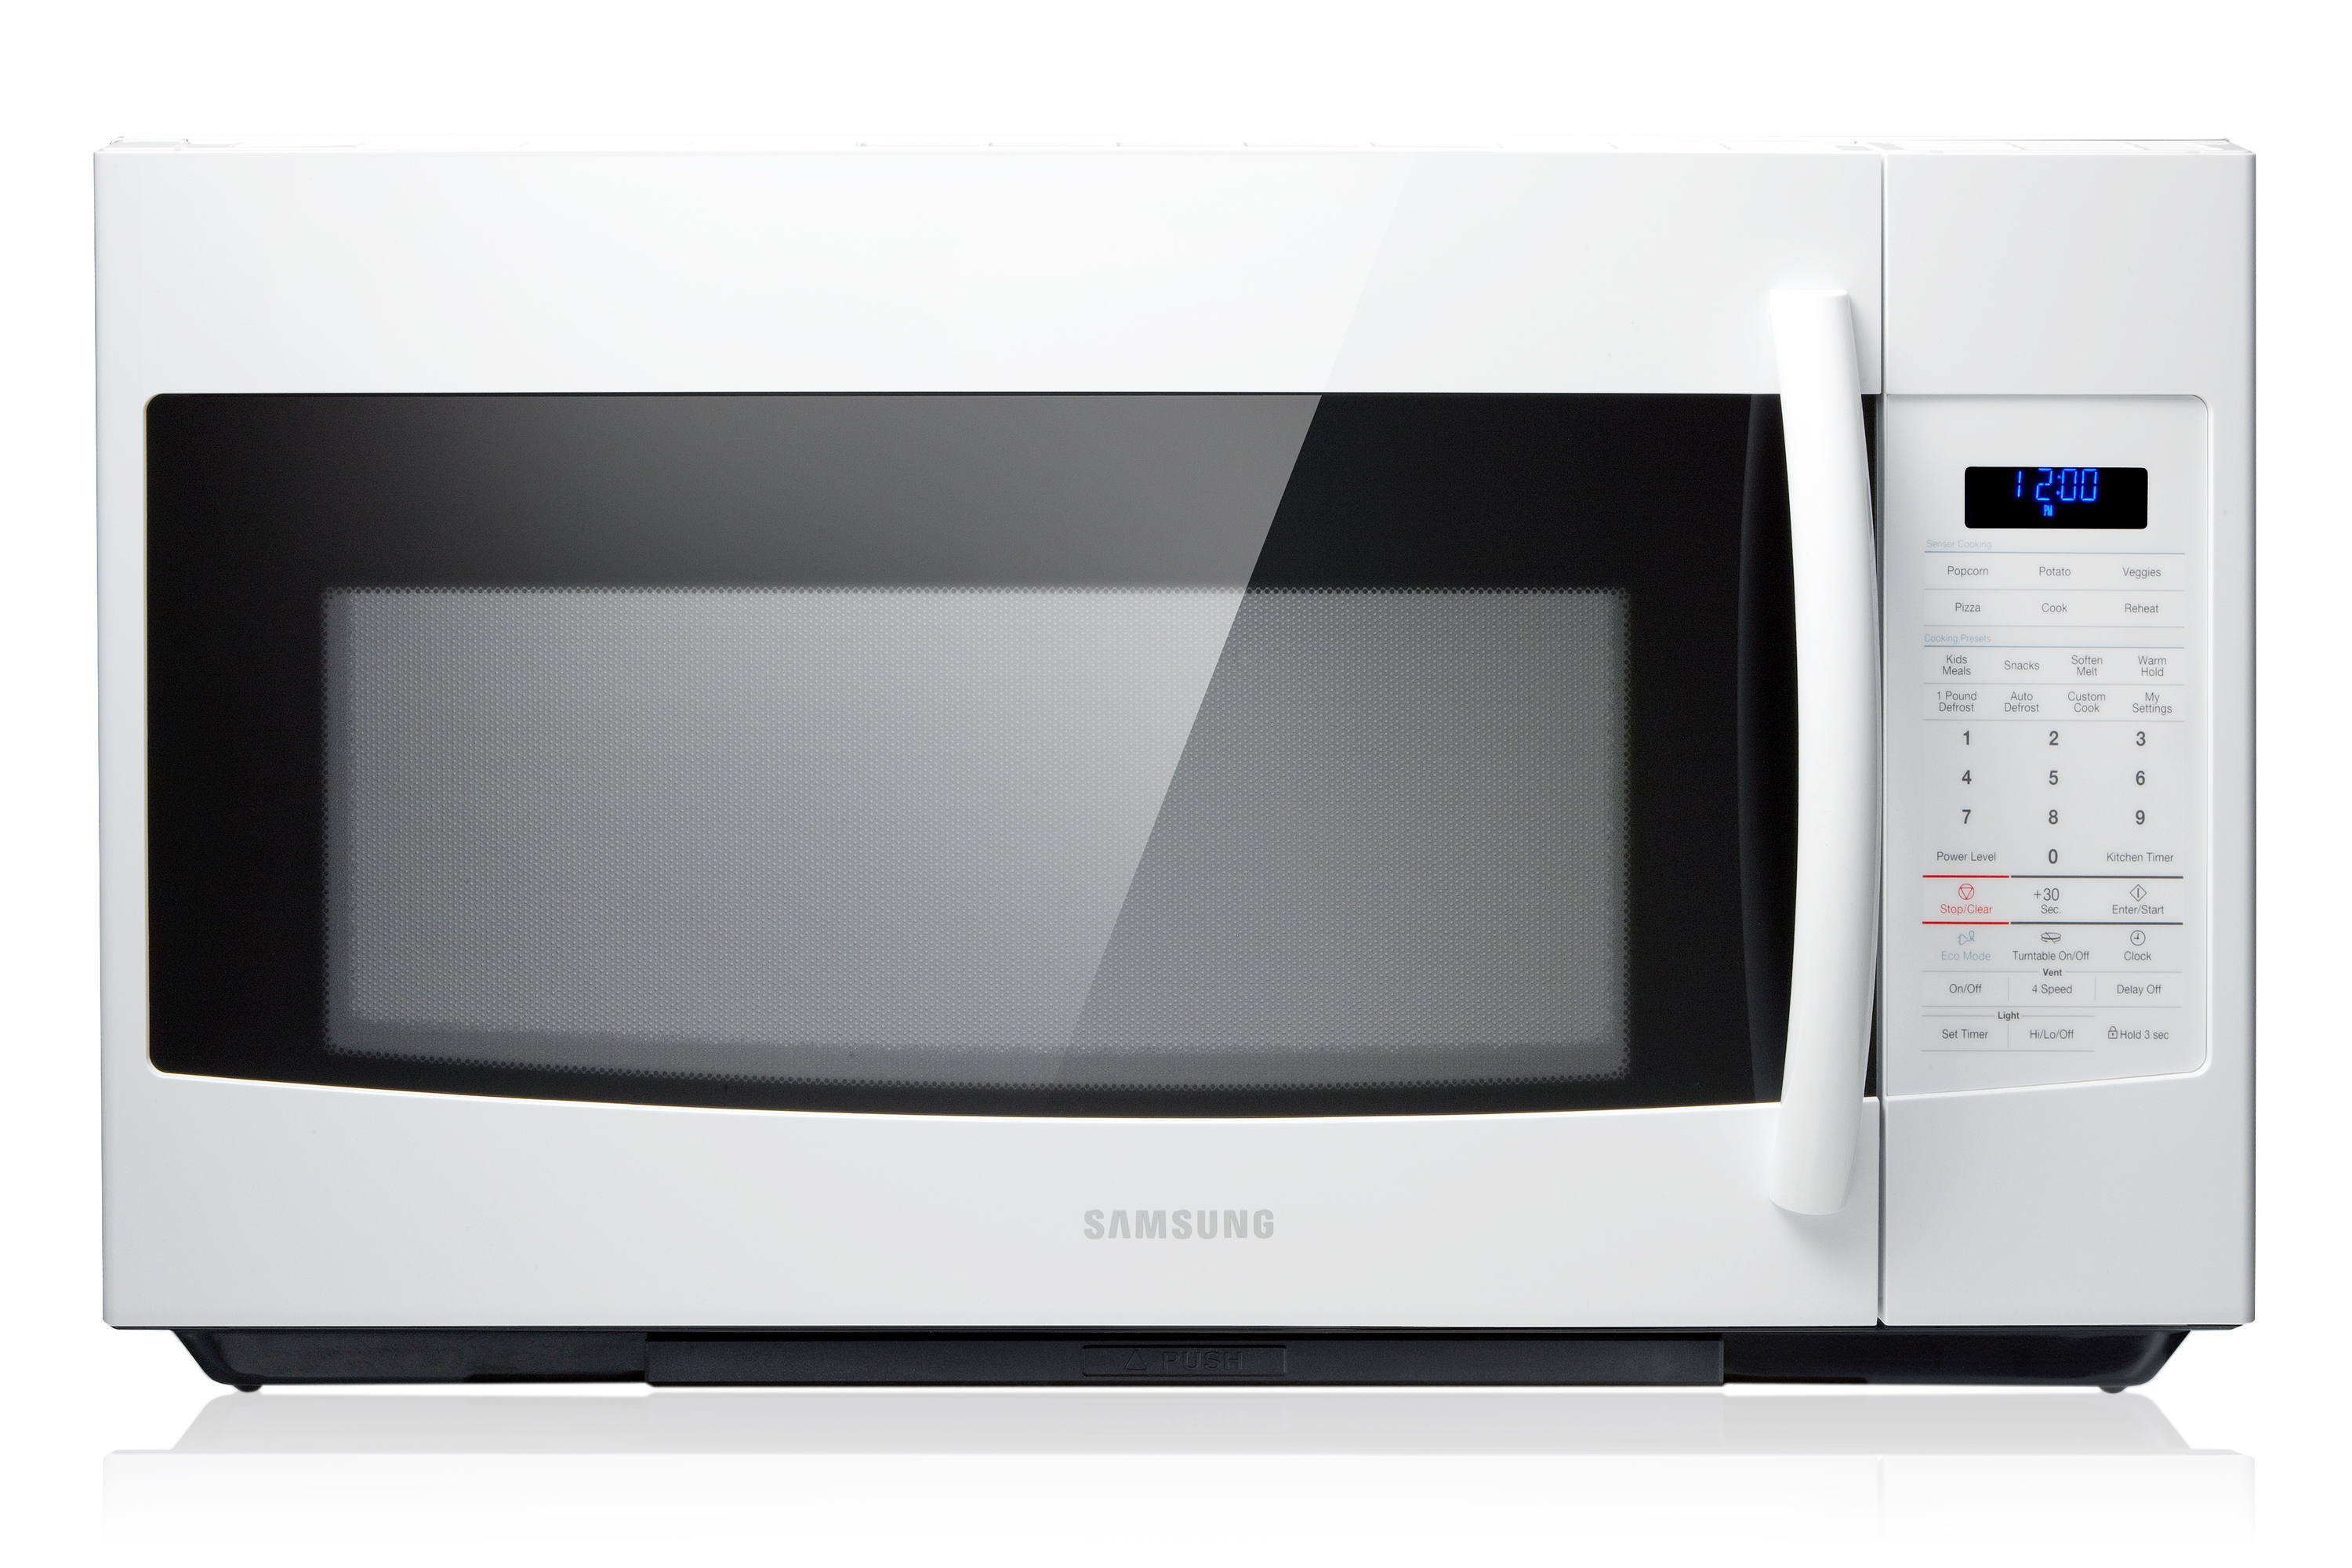 SMH1927W 1.9 cu.ft Over the Range Microwave White